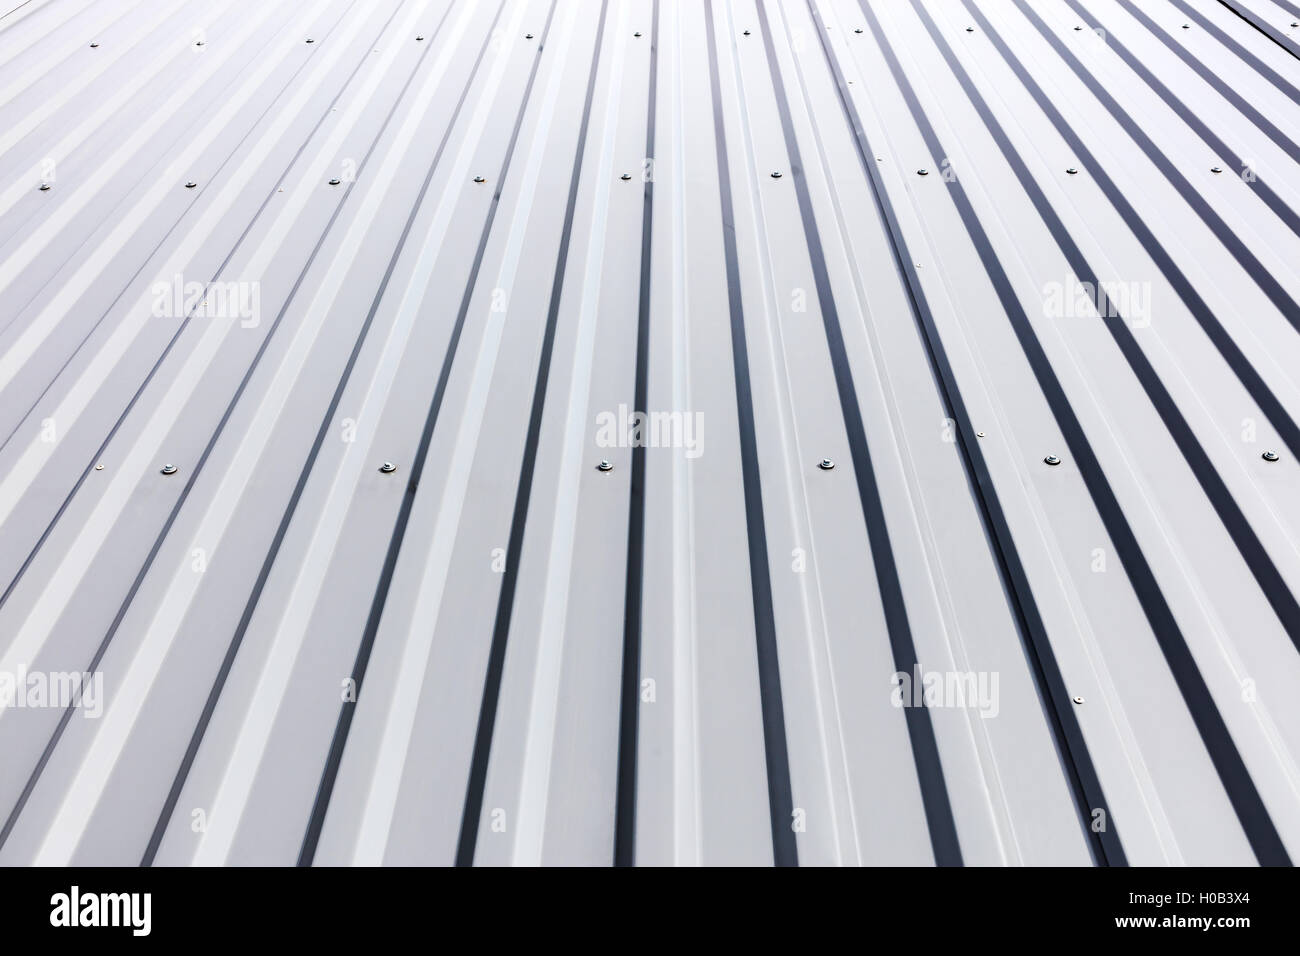 corrugated steel cladding with rivets on roof of industrial